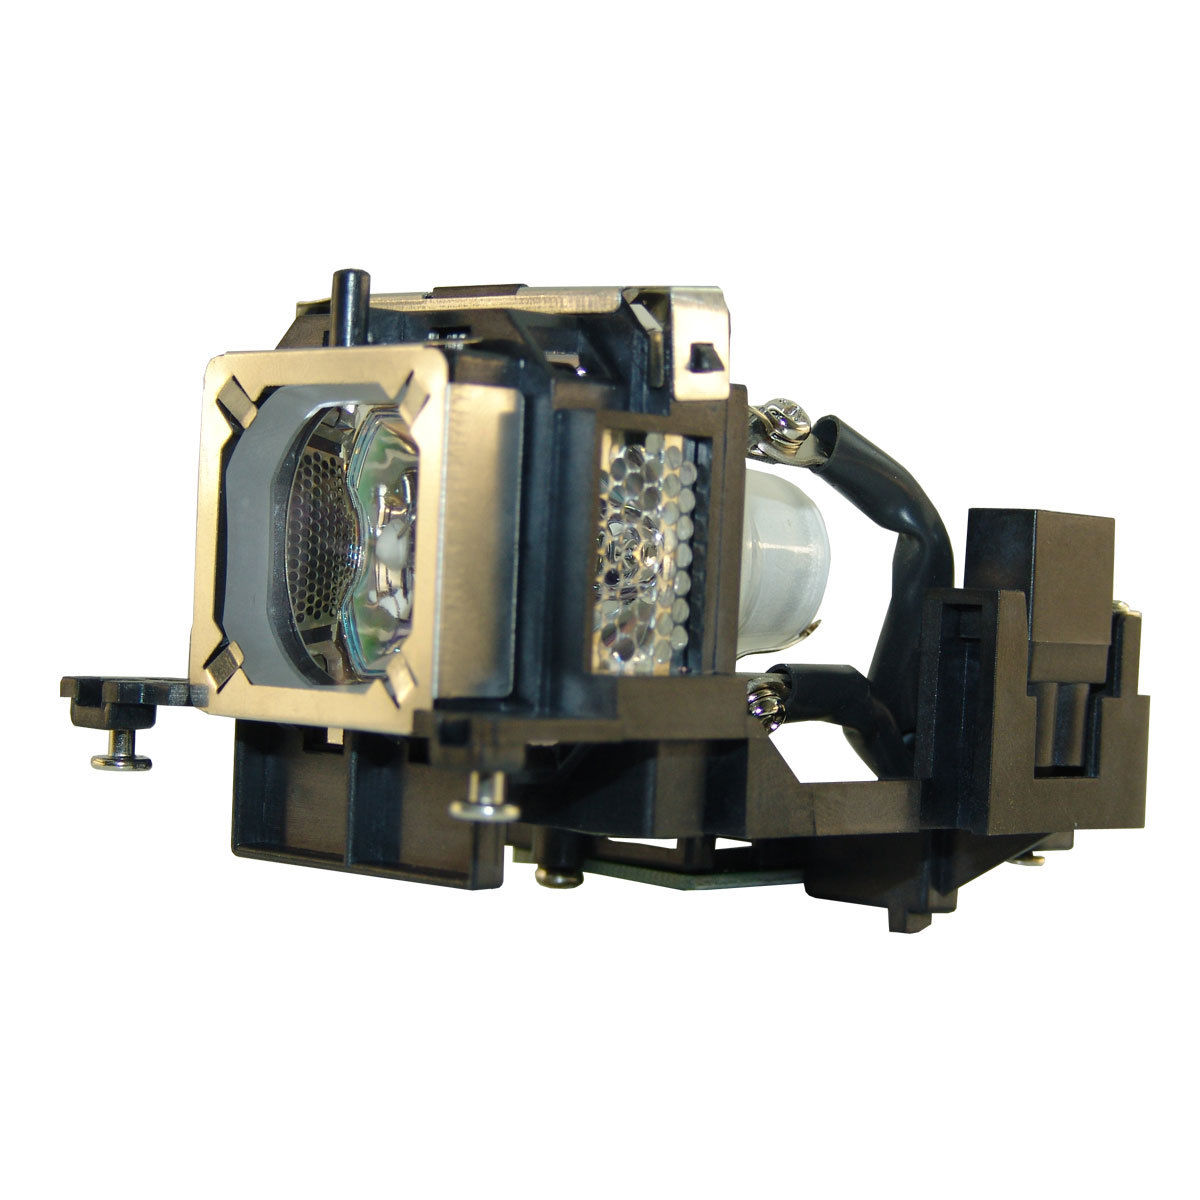 Projector Lamp Bulb POA-LMP131 LMP131 for SANYO PLC-WXU300 PLC-XU300 PLC-XU301 PLC-XU305 PLC-XU350 PLC-XU355 With Housing plc xm150 plc xm150l plc wm5500 plc zm5000l poa lmp136 for sanyo compatible projector lamp bulbs with housing